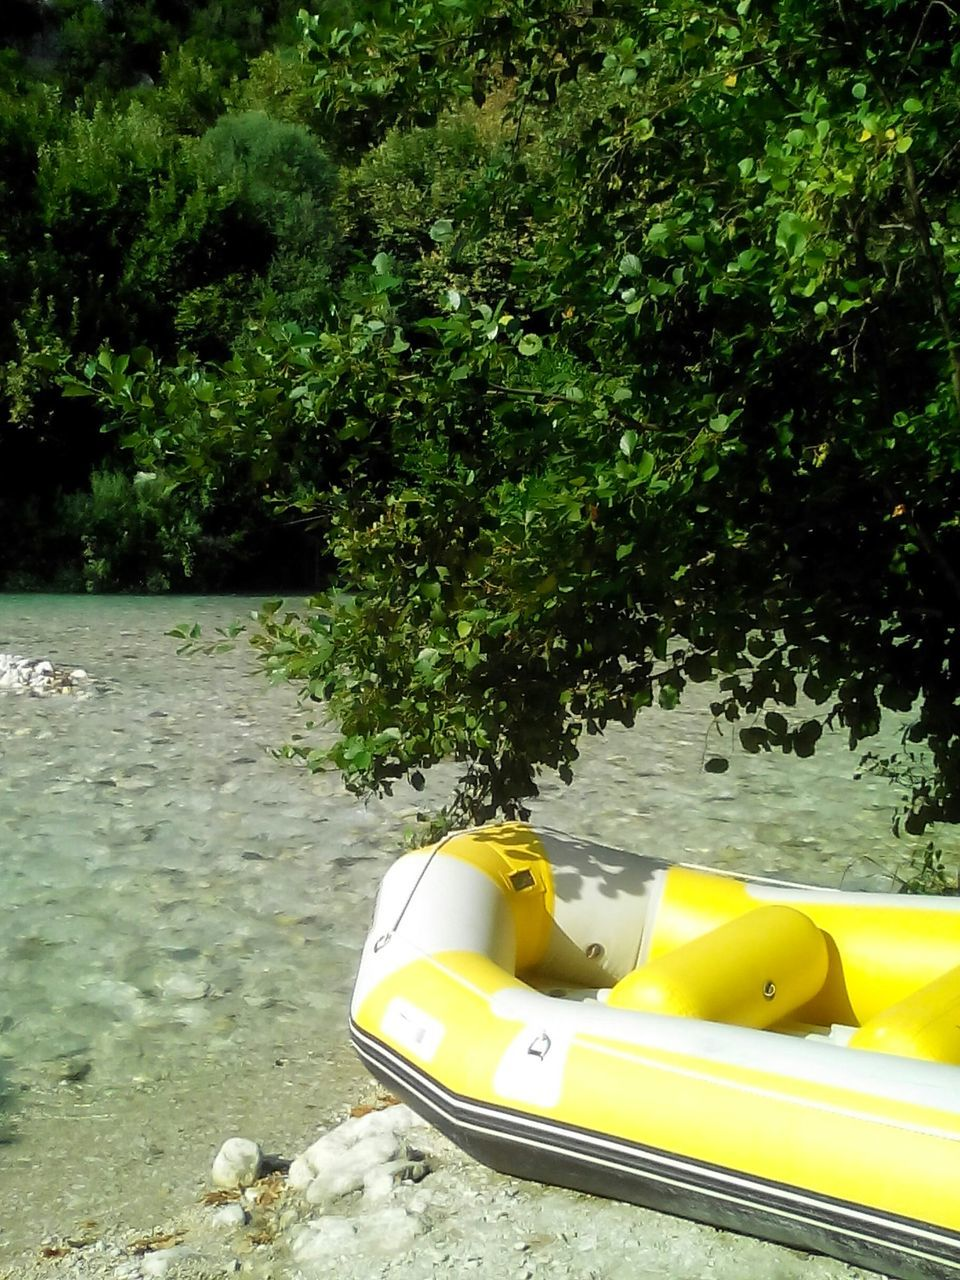 yellow, nautical vessel, tree, water, day, pedal boat, transportation, no people, nature, outdoors, moored, kayak